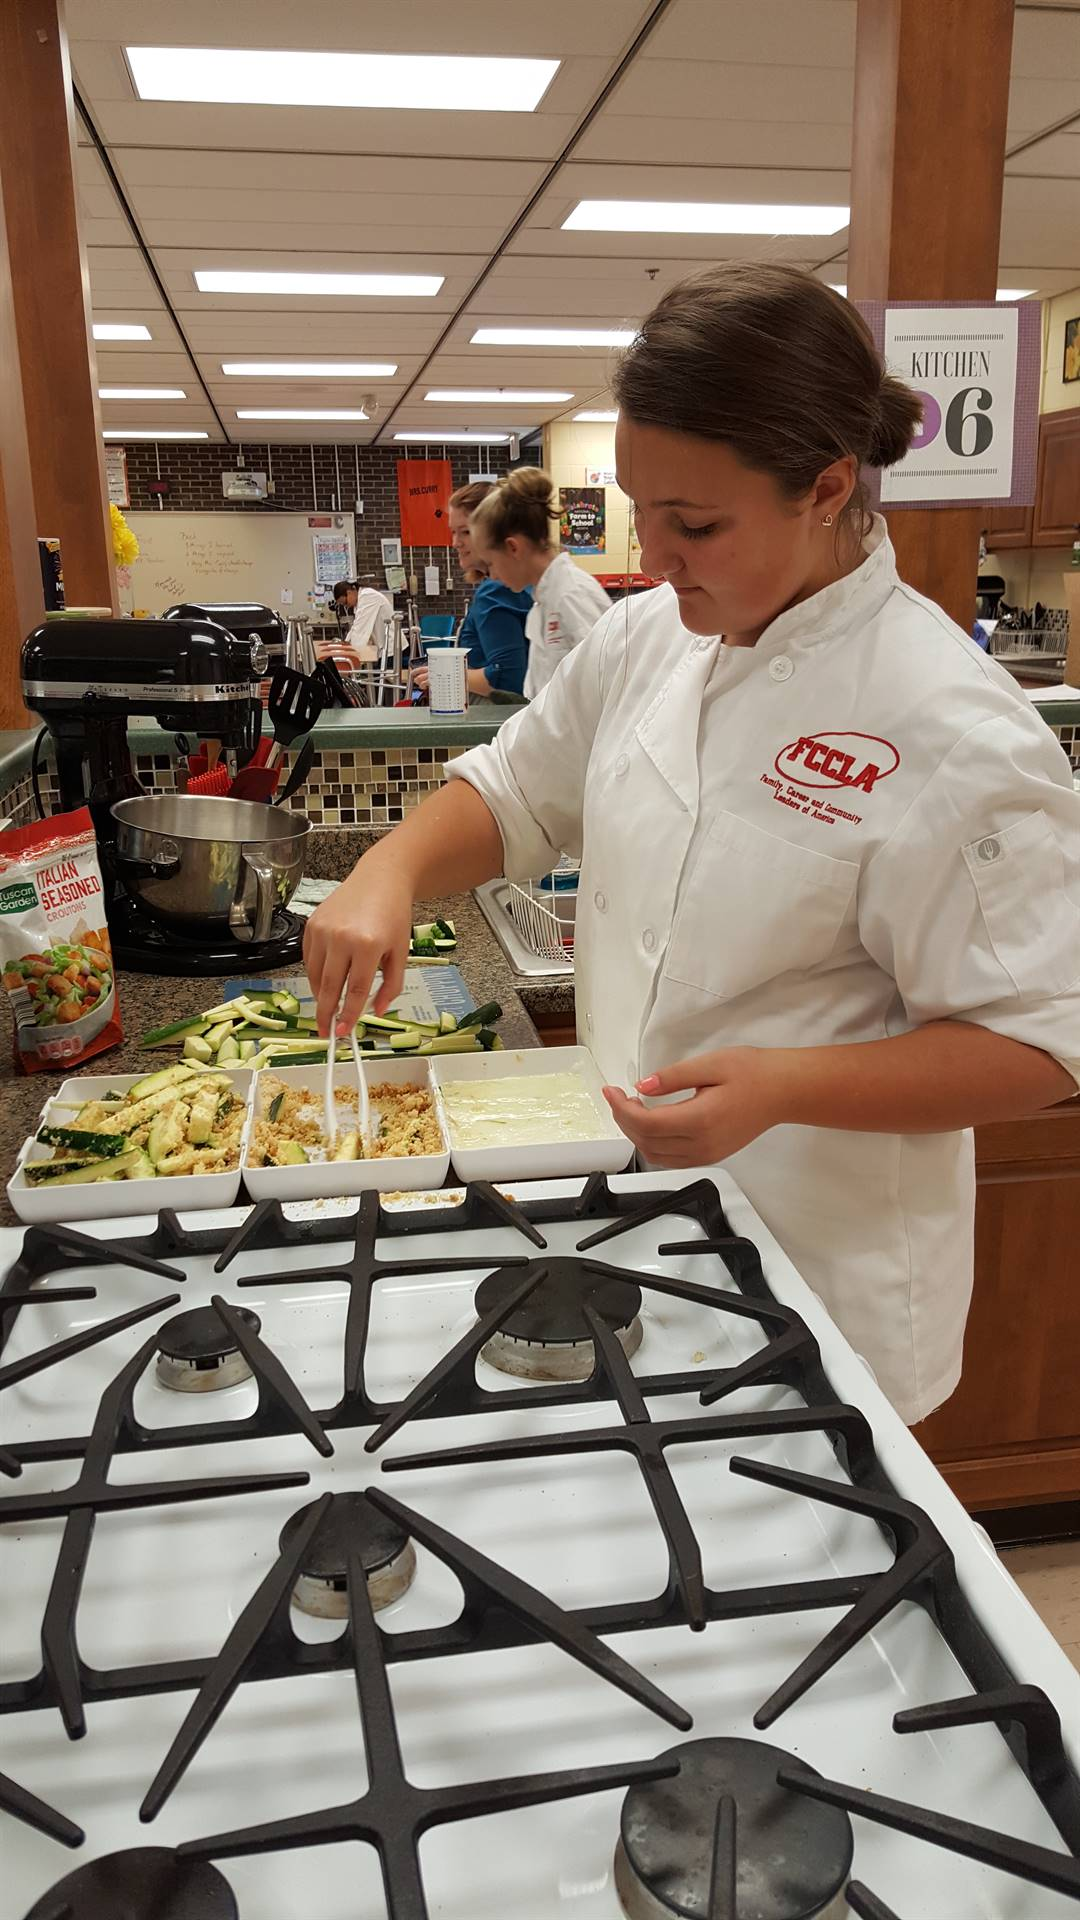 FCCLA member preparing zucchini fries at a recent fundraiser.